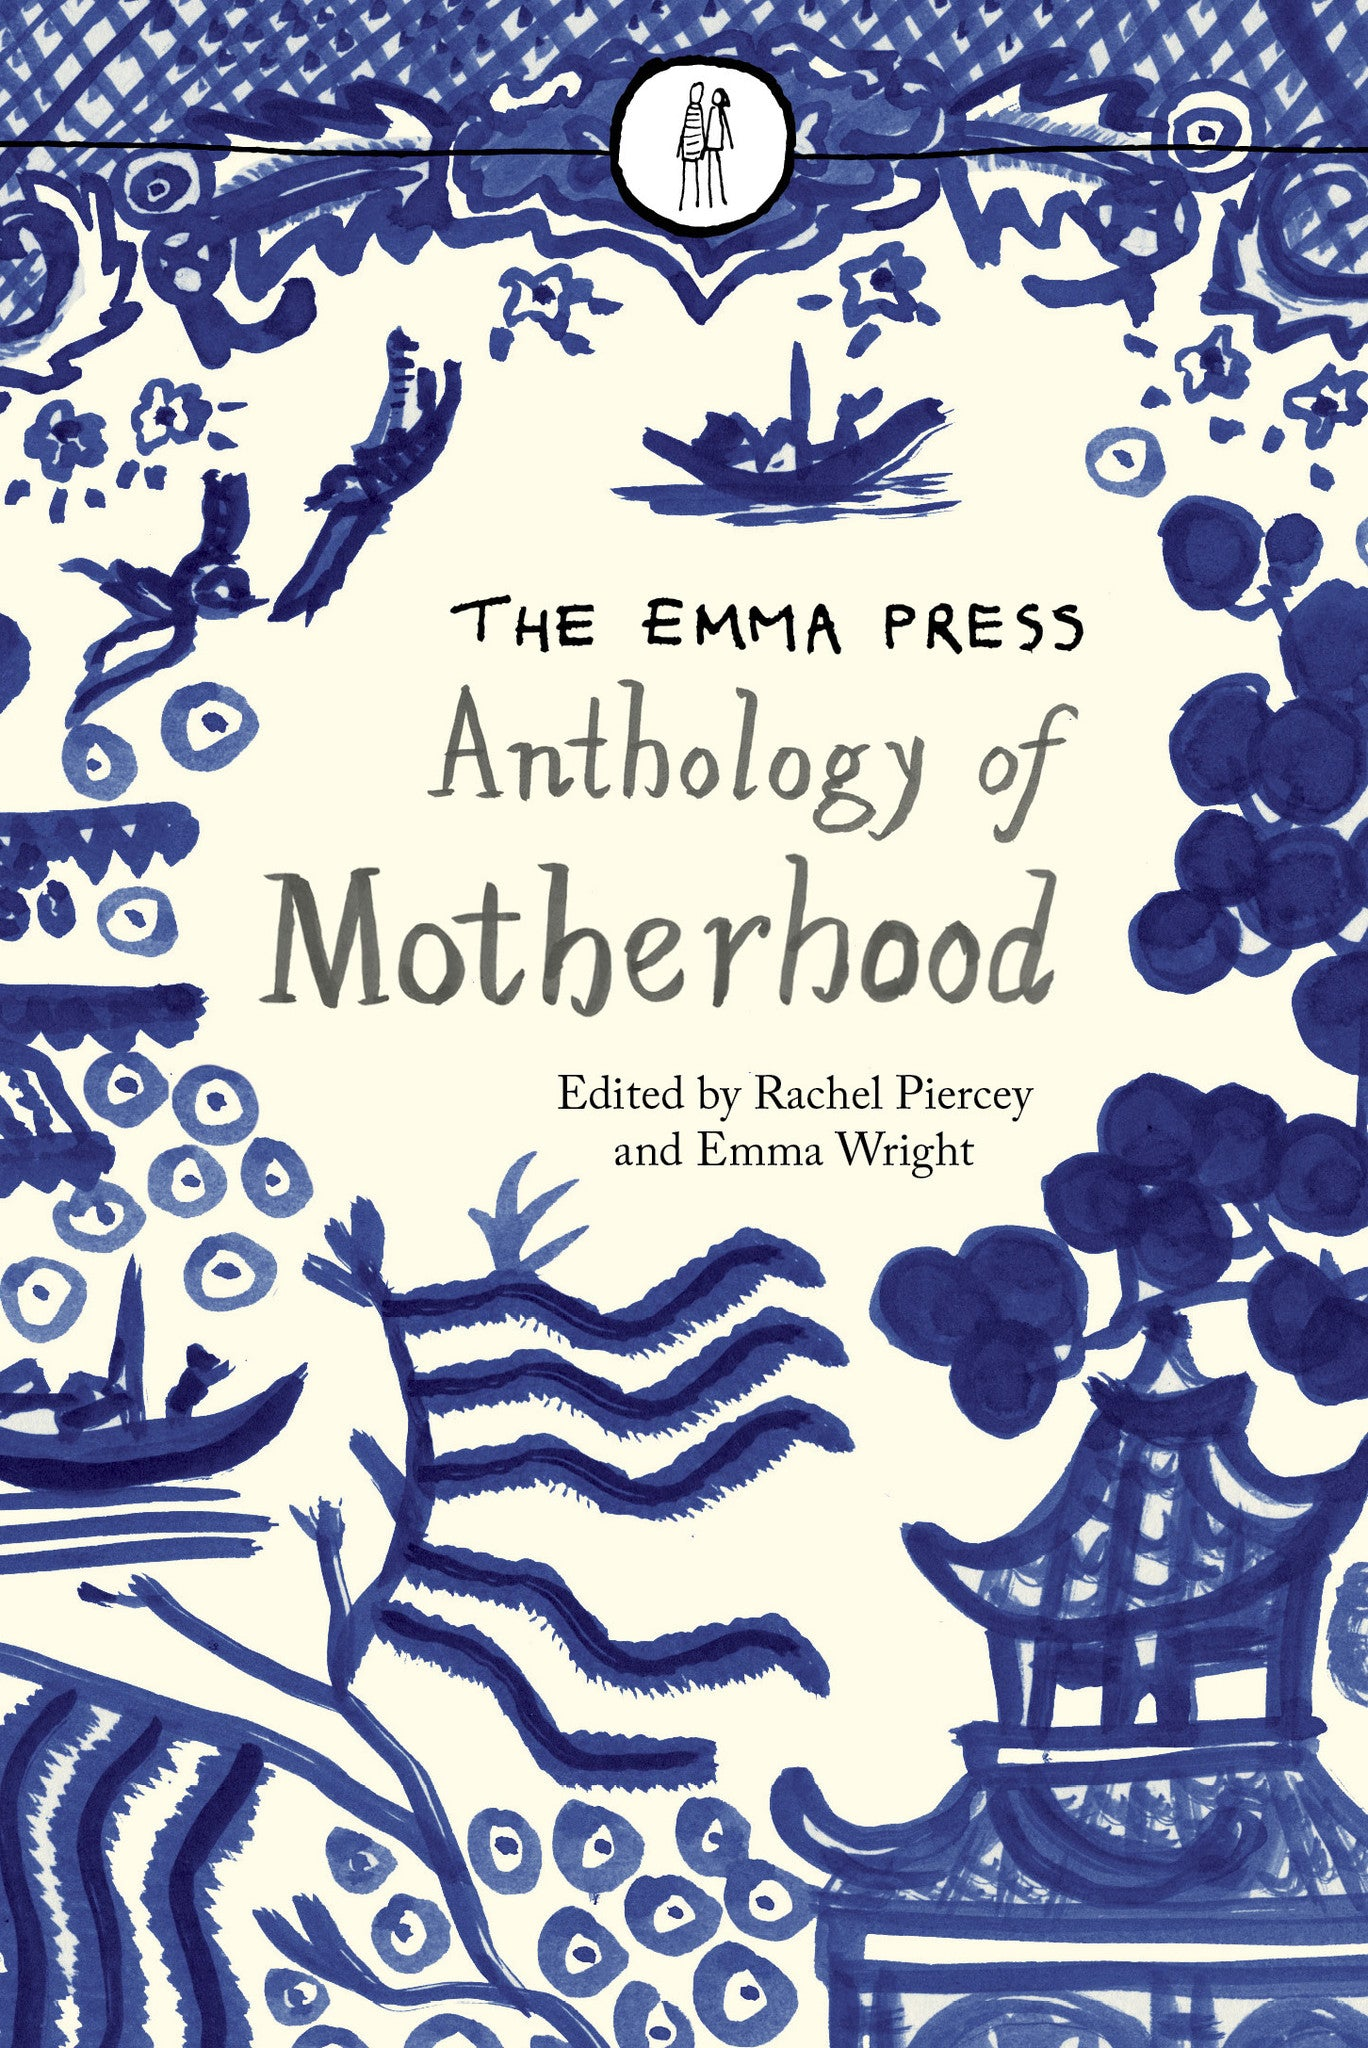 The Emma Press Anthology of Motherhood